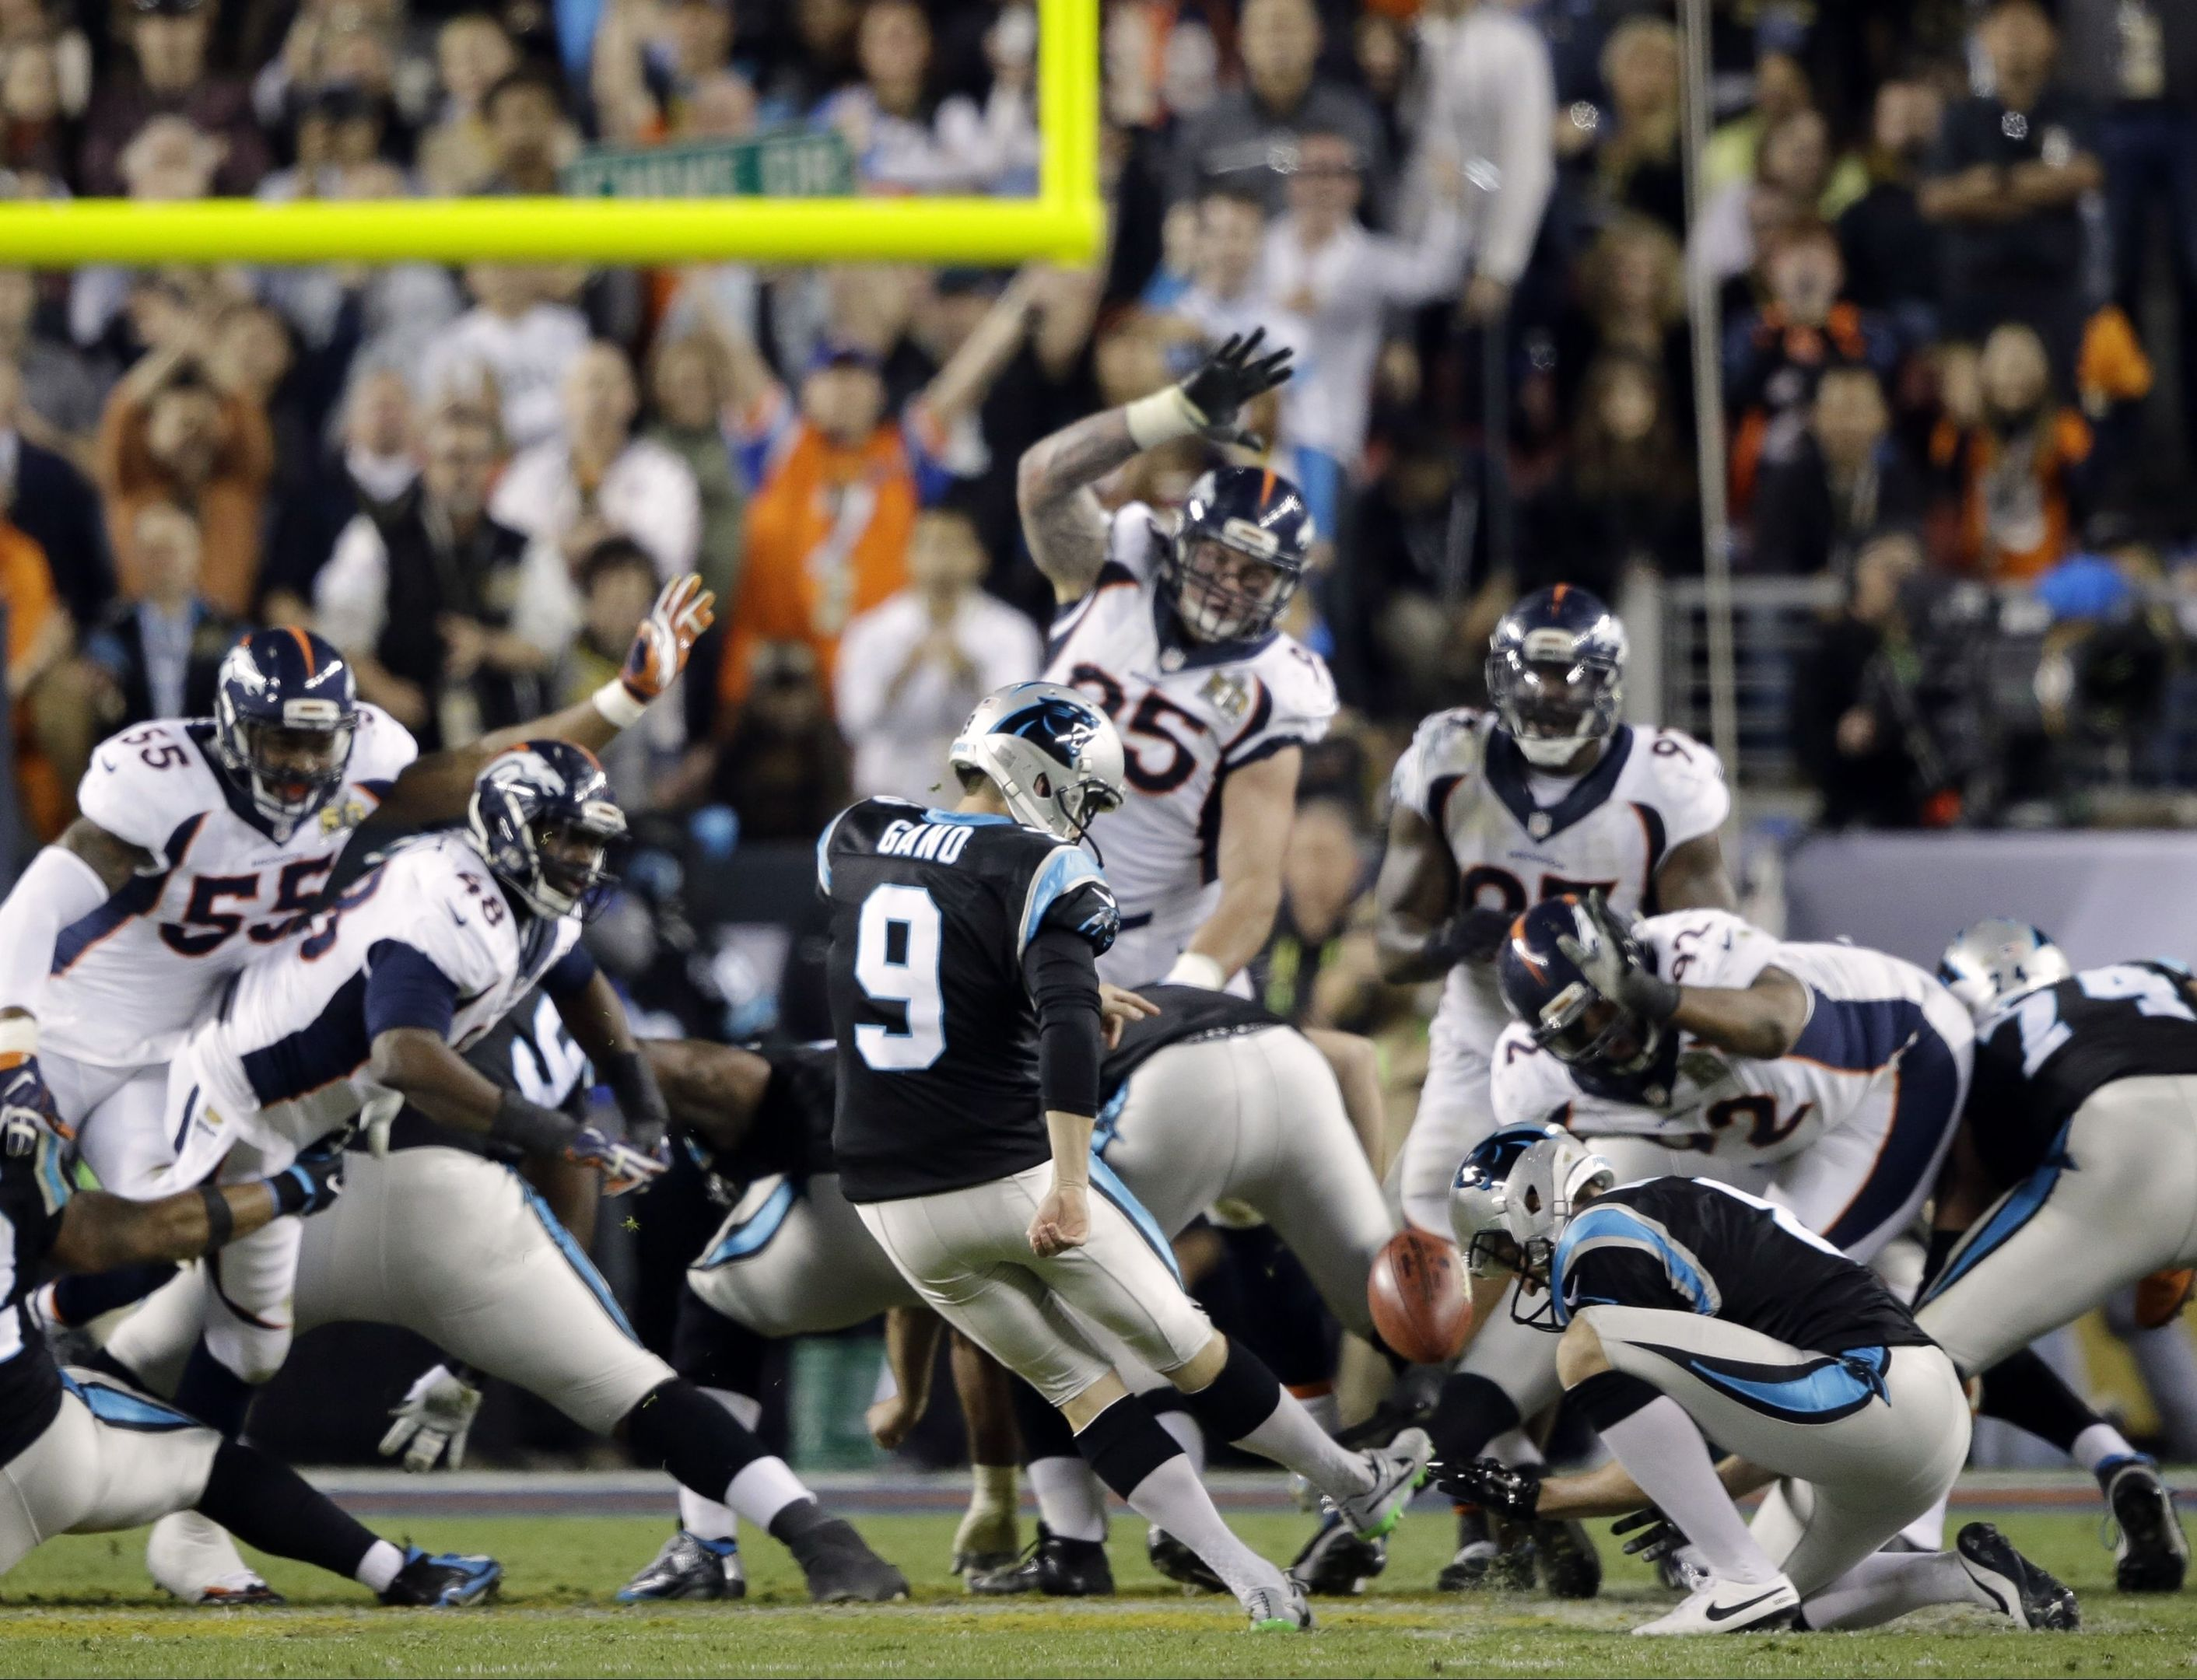 Gano (9) kicks a 39-yard field goal during the second half of the NFL Super Bowl 50 football game.